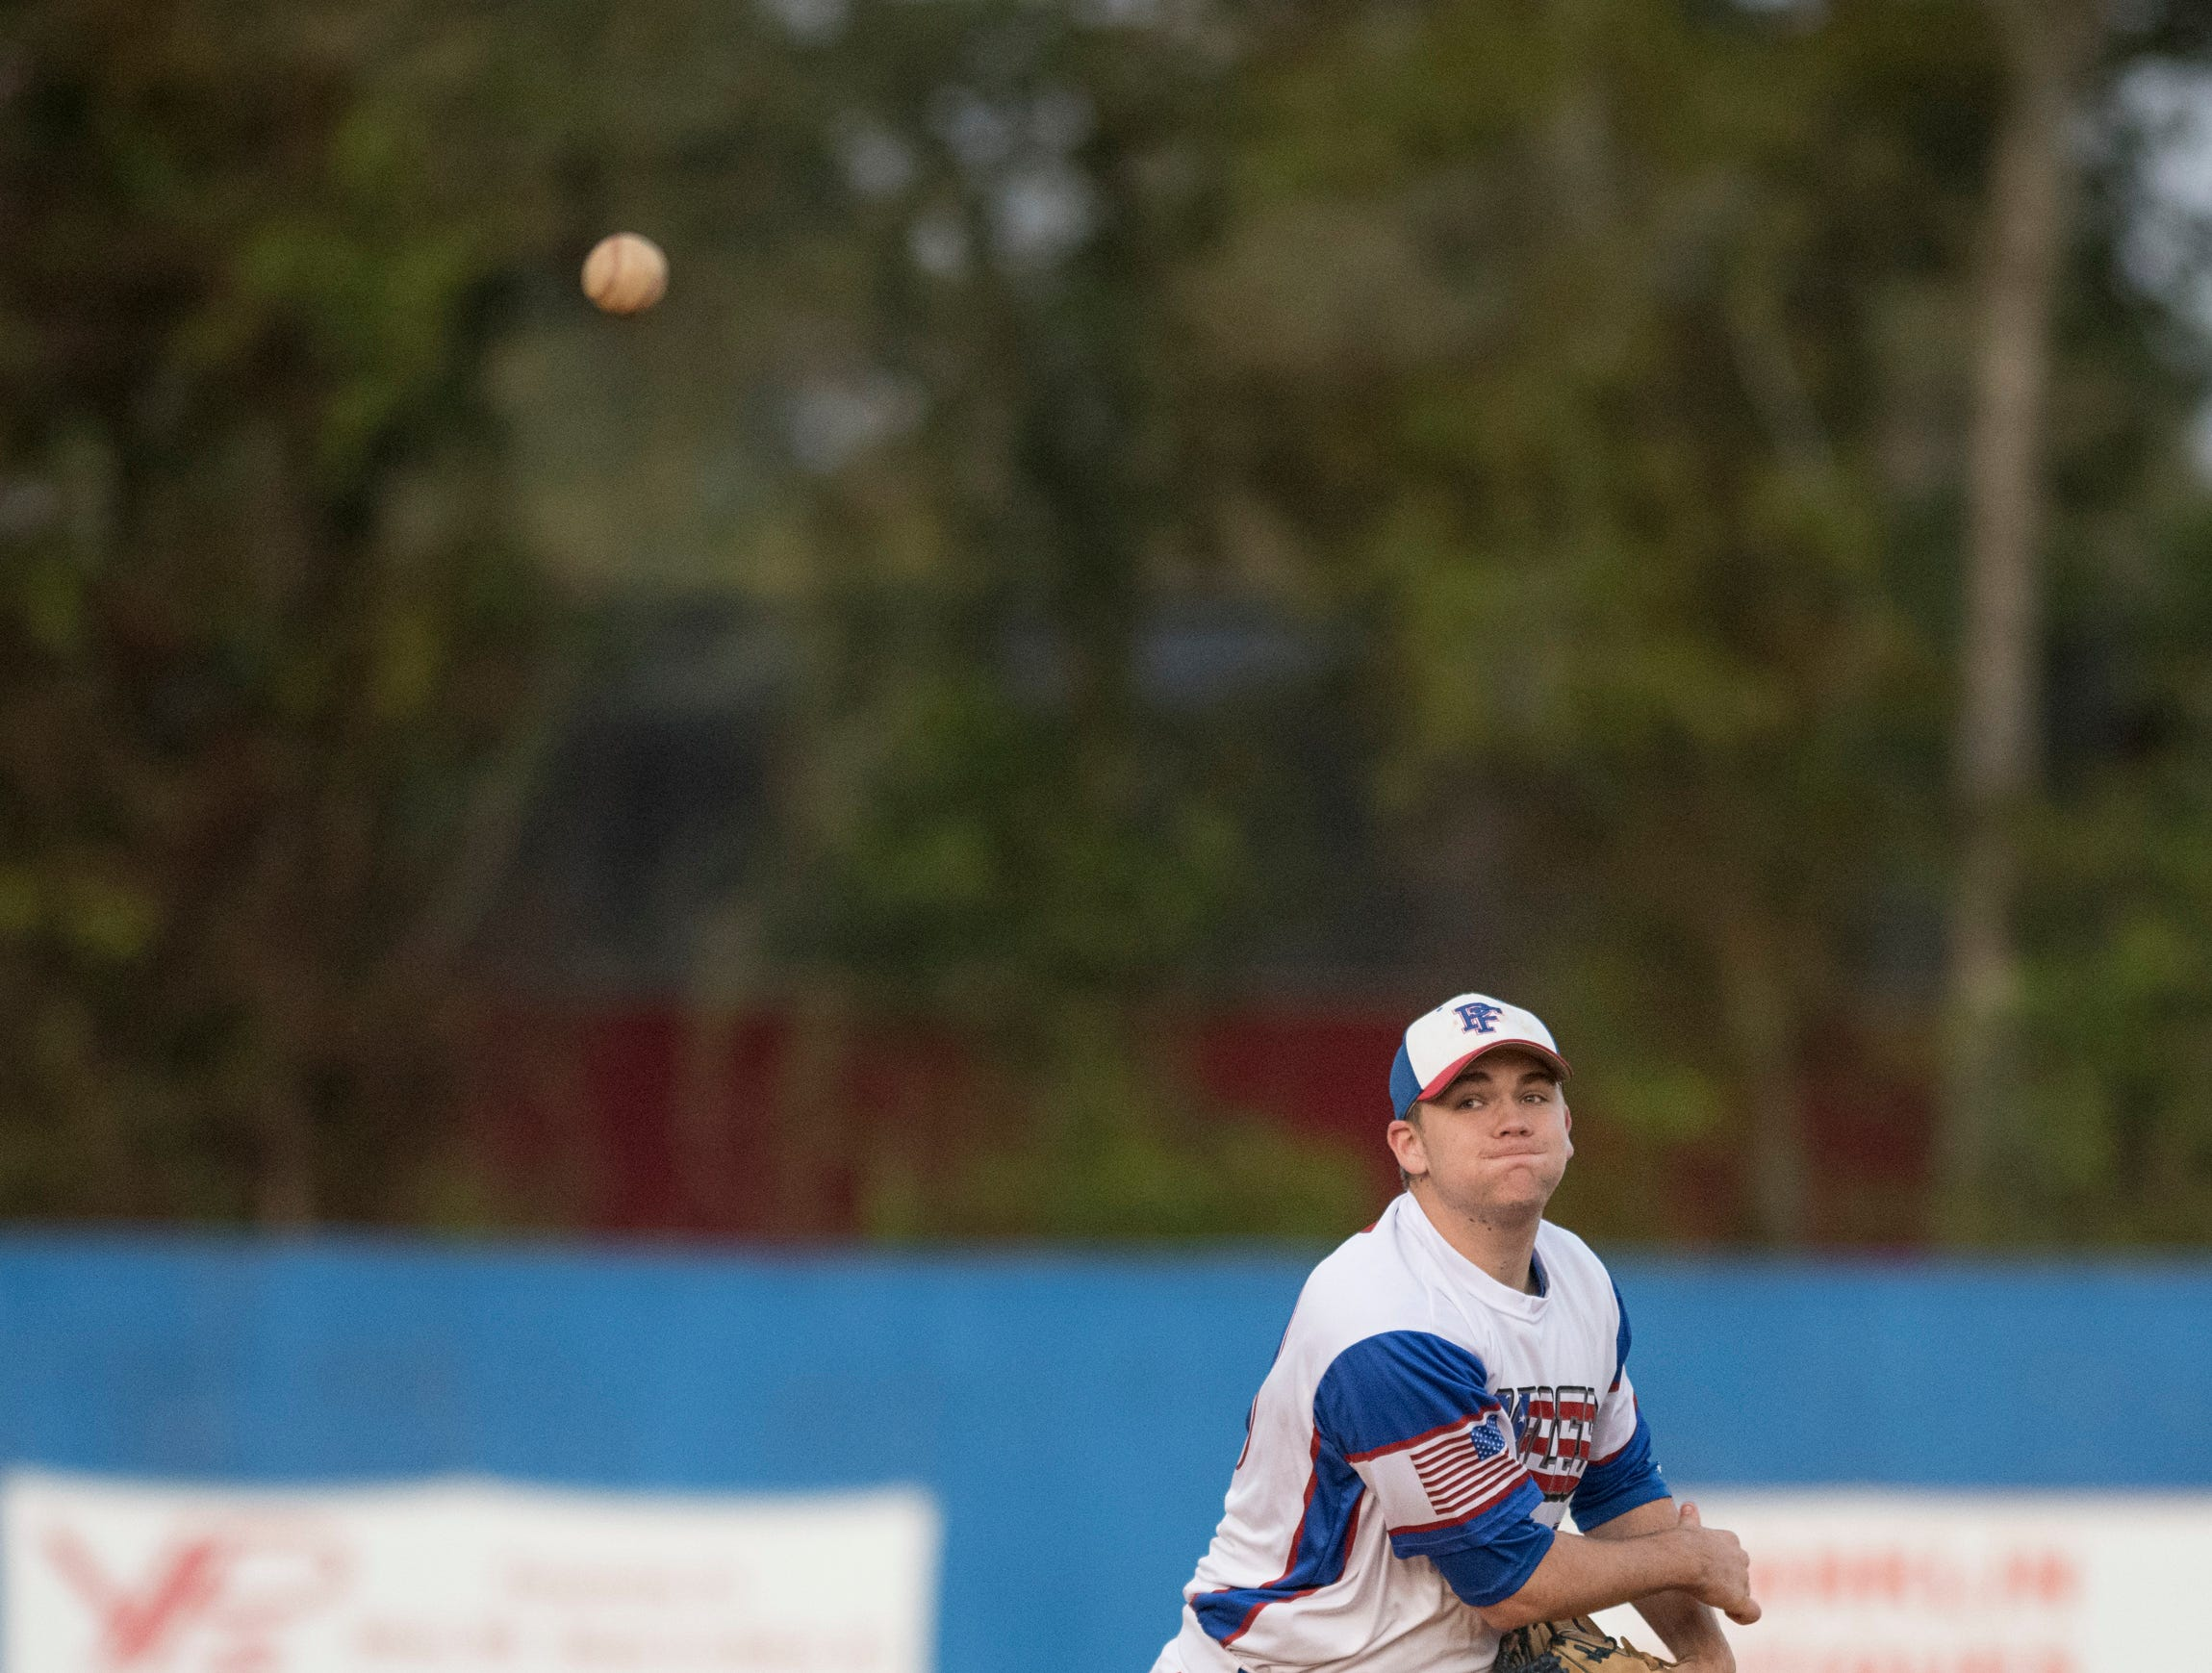 Shortstop Timmy Williams (20) tosses to first base while warming up in between innings during the Christian Educational Consortium vs Pine Forest baseball game at Pine Forest High School in Pensacola on Wednesday, April 3, 2019.